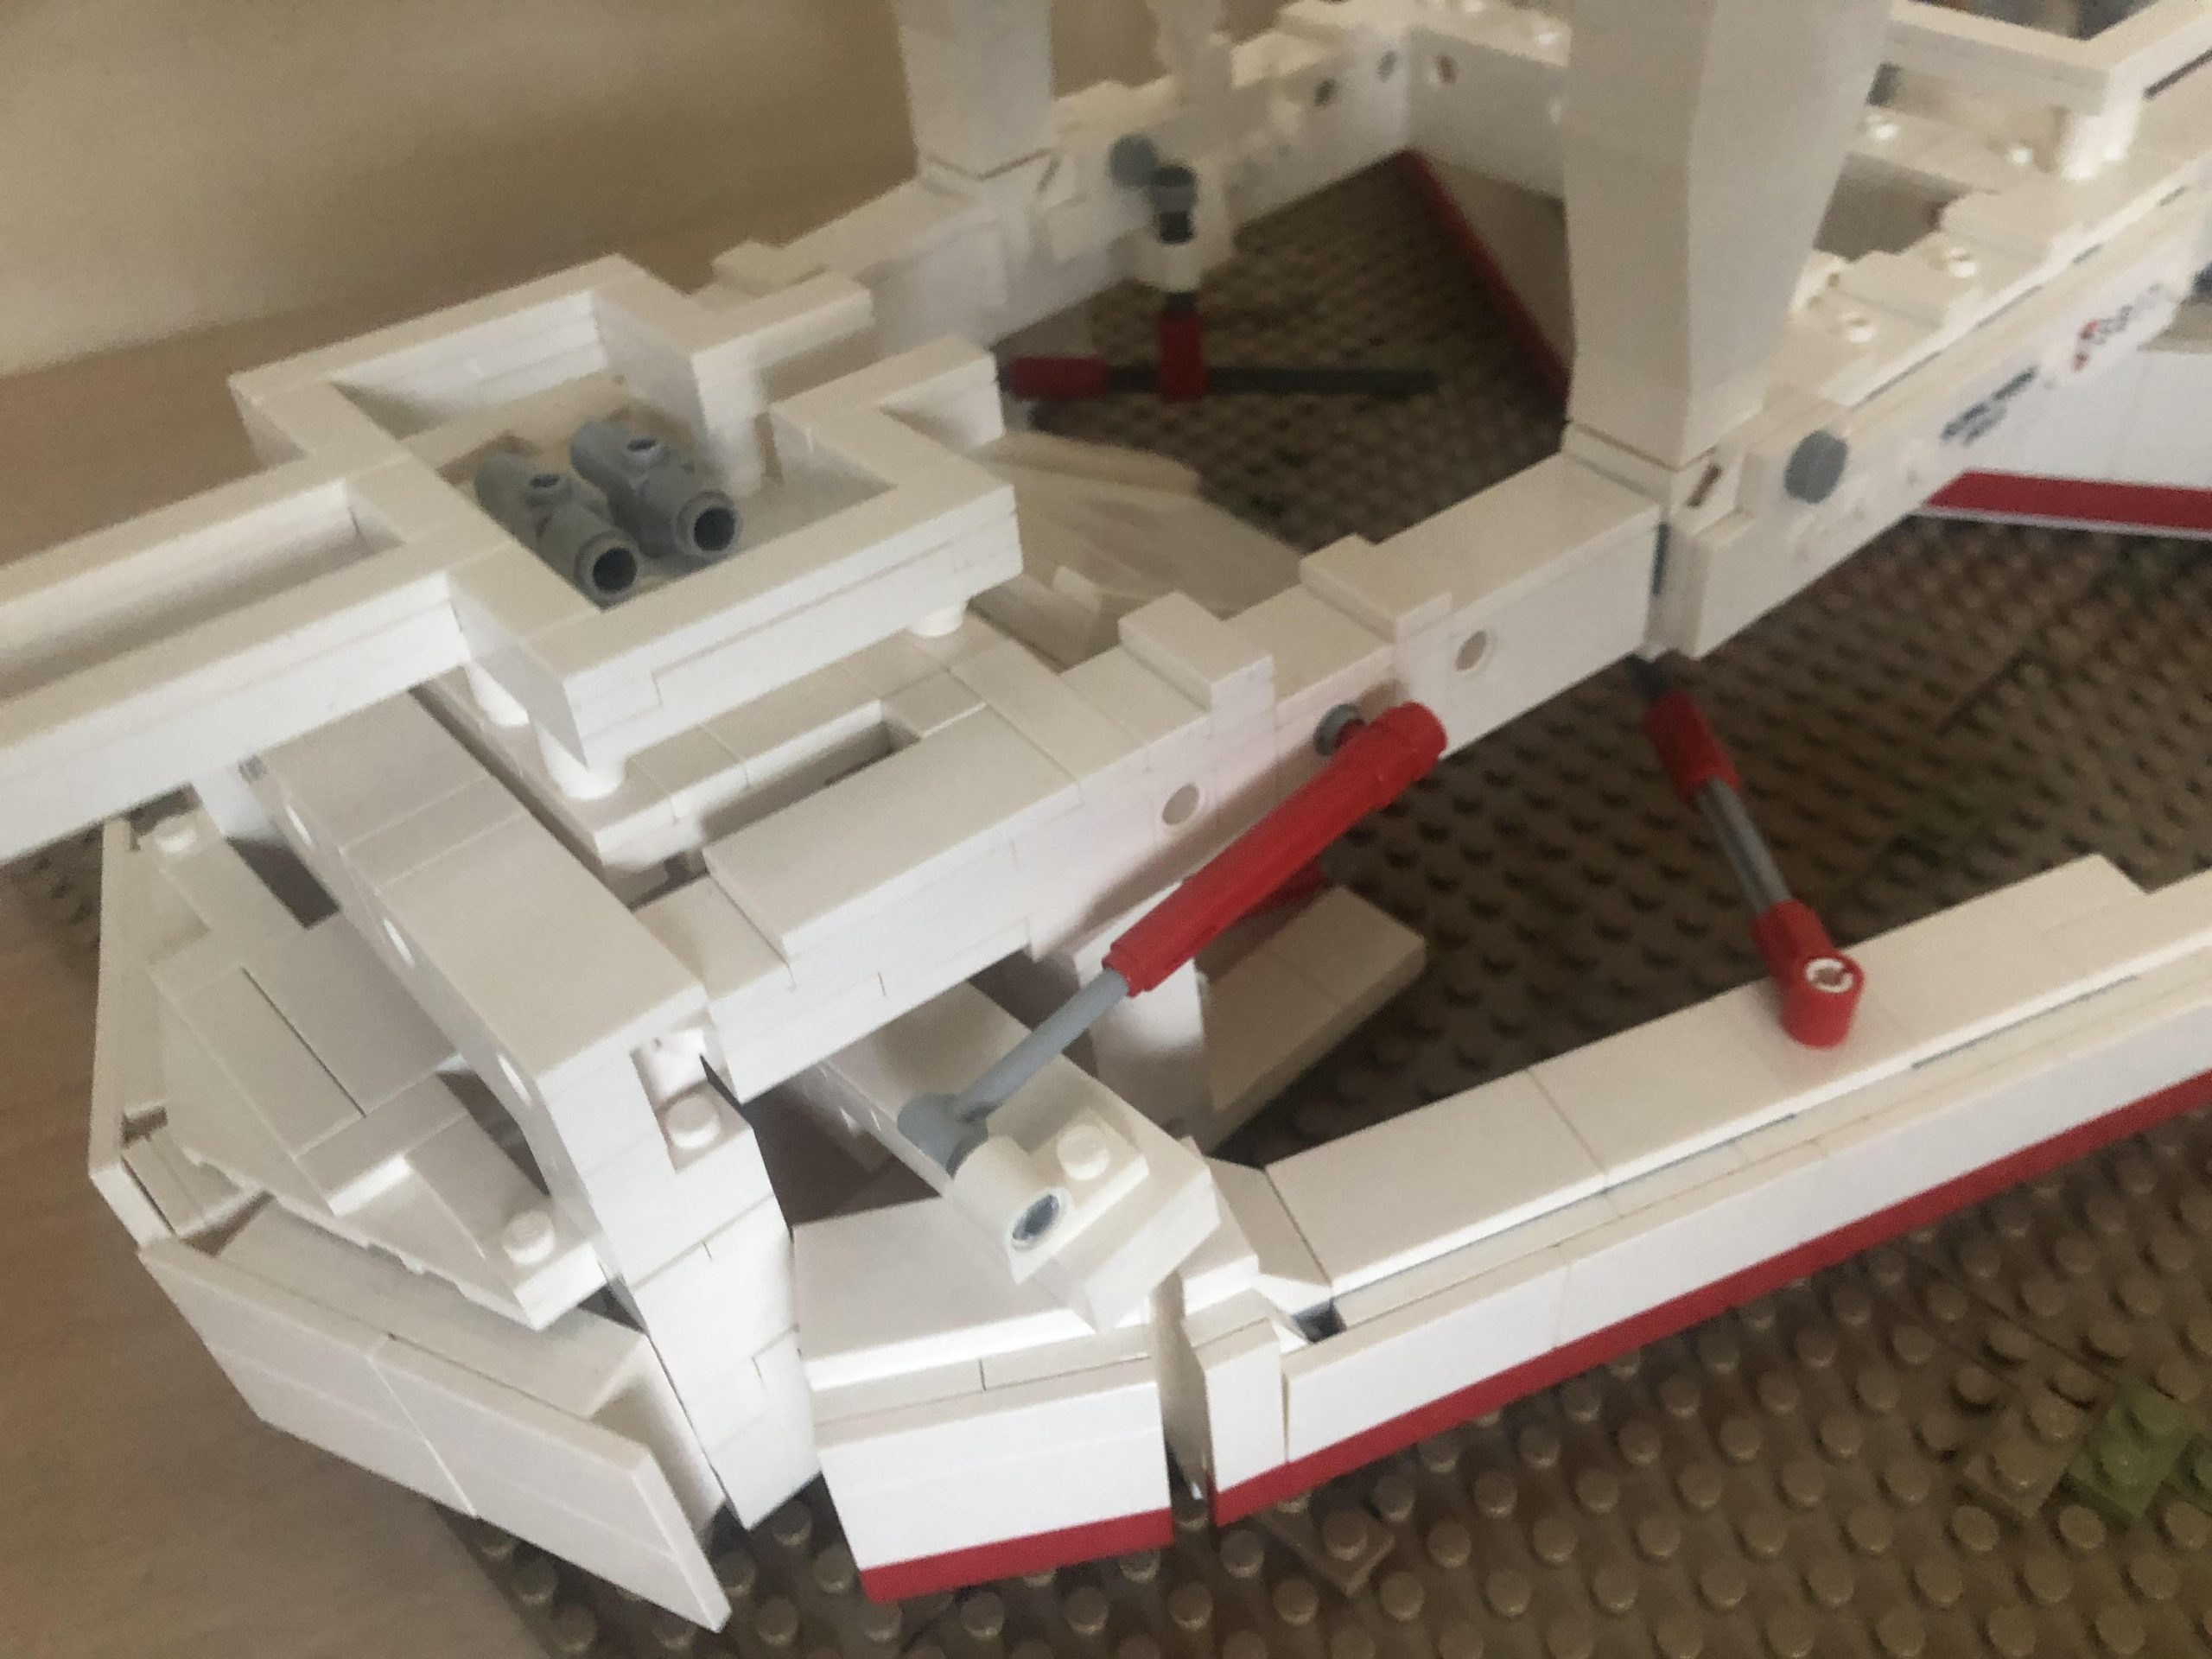 Detail of LEGO model of subsea plough by Osbit